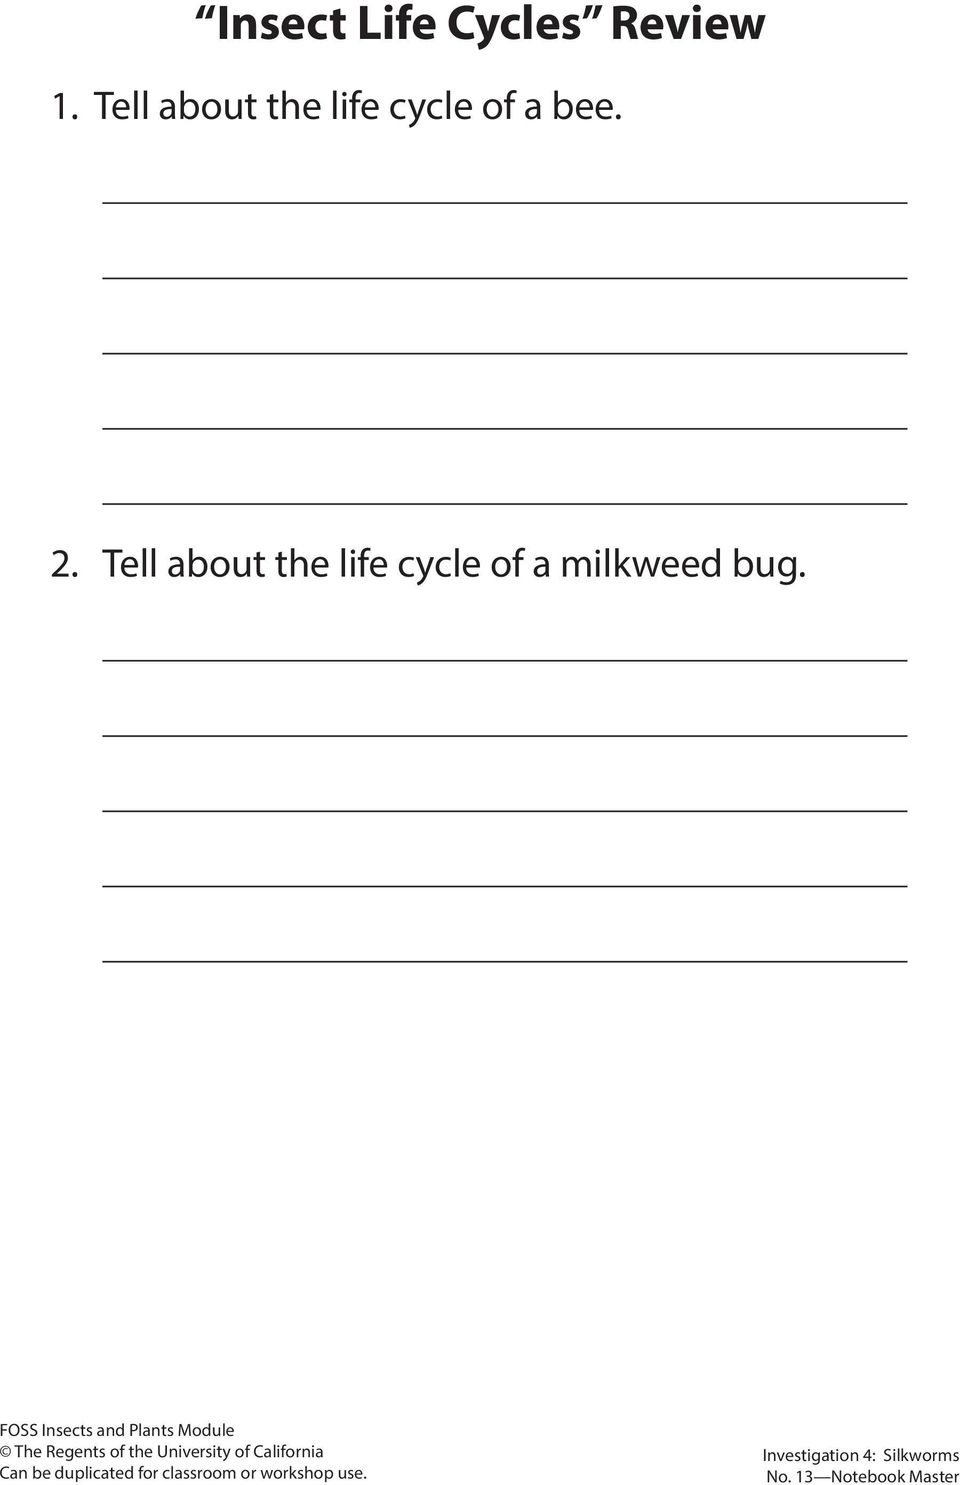 Tell about the life cycle of a milkweed